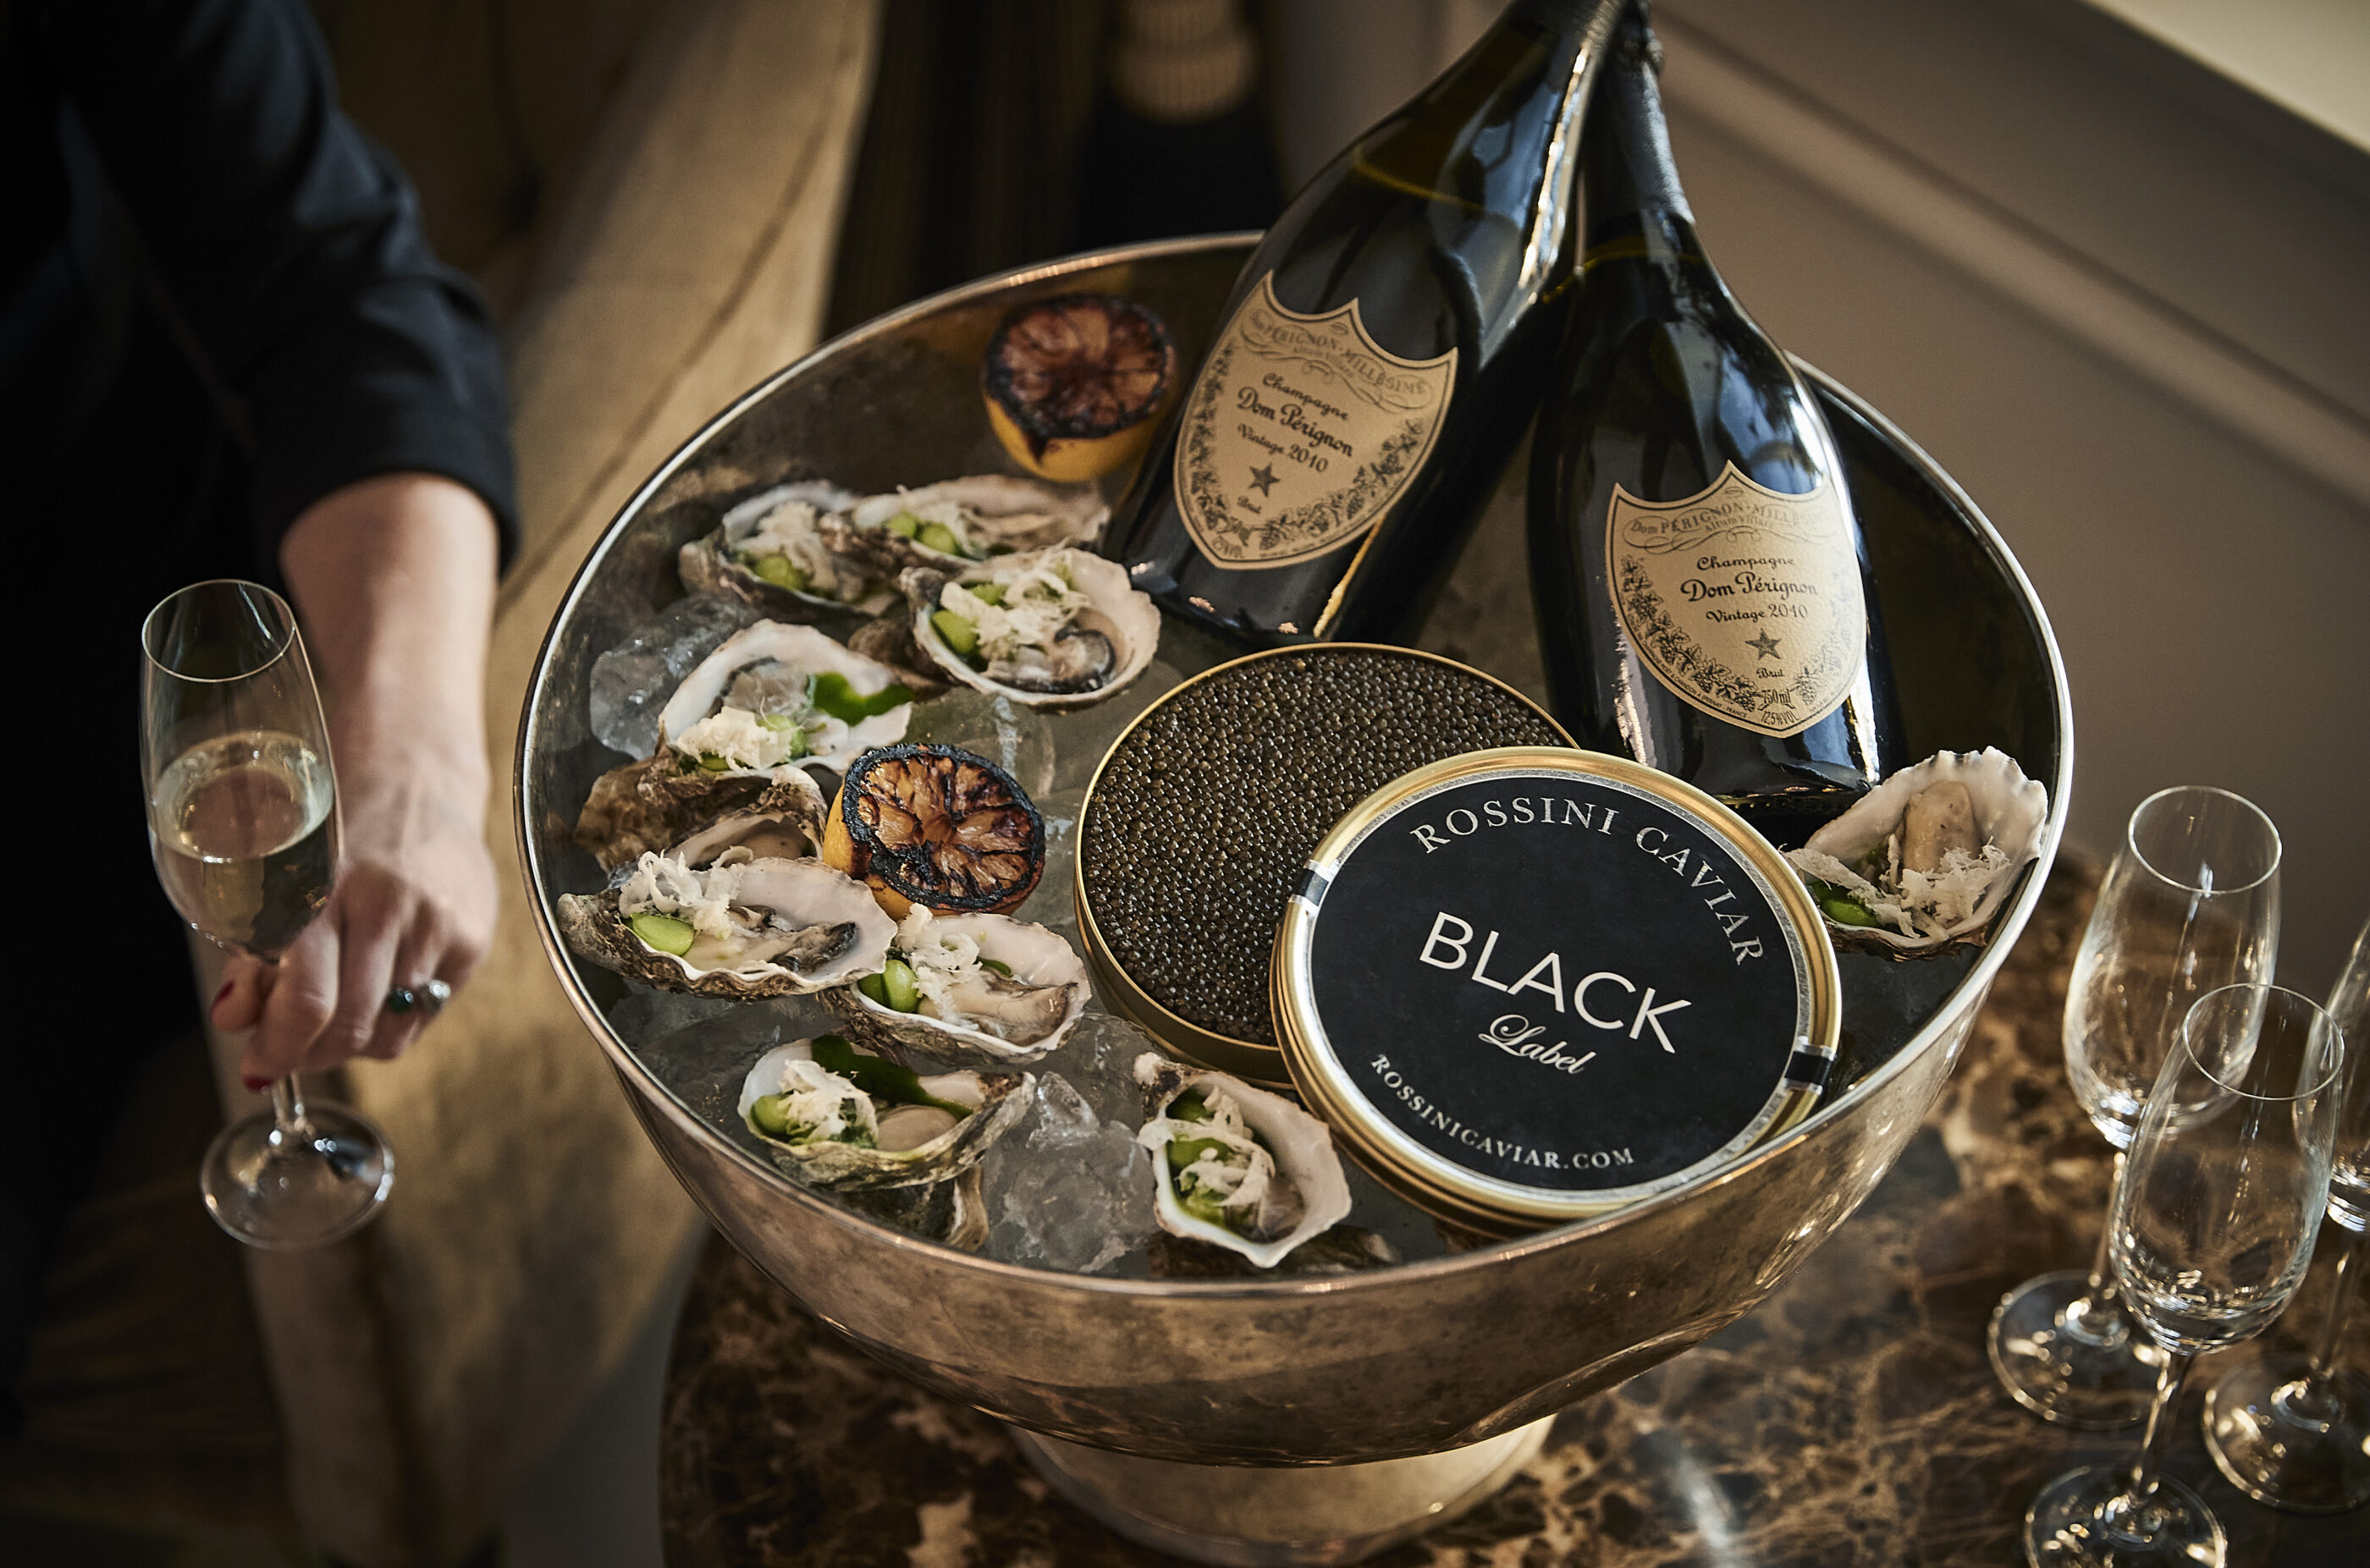 Delicious bowl of caviar, oysters and champagne